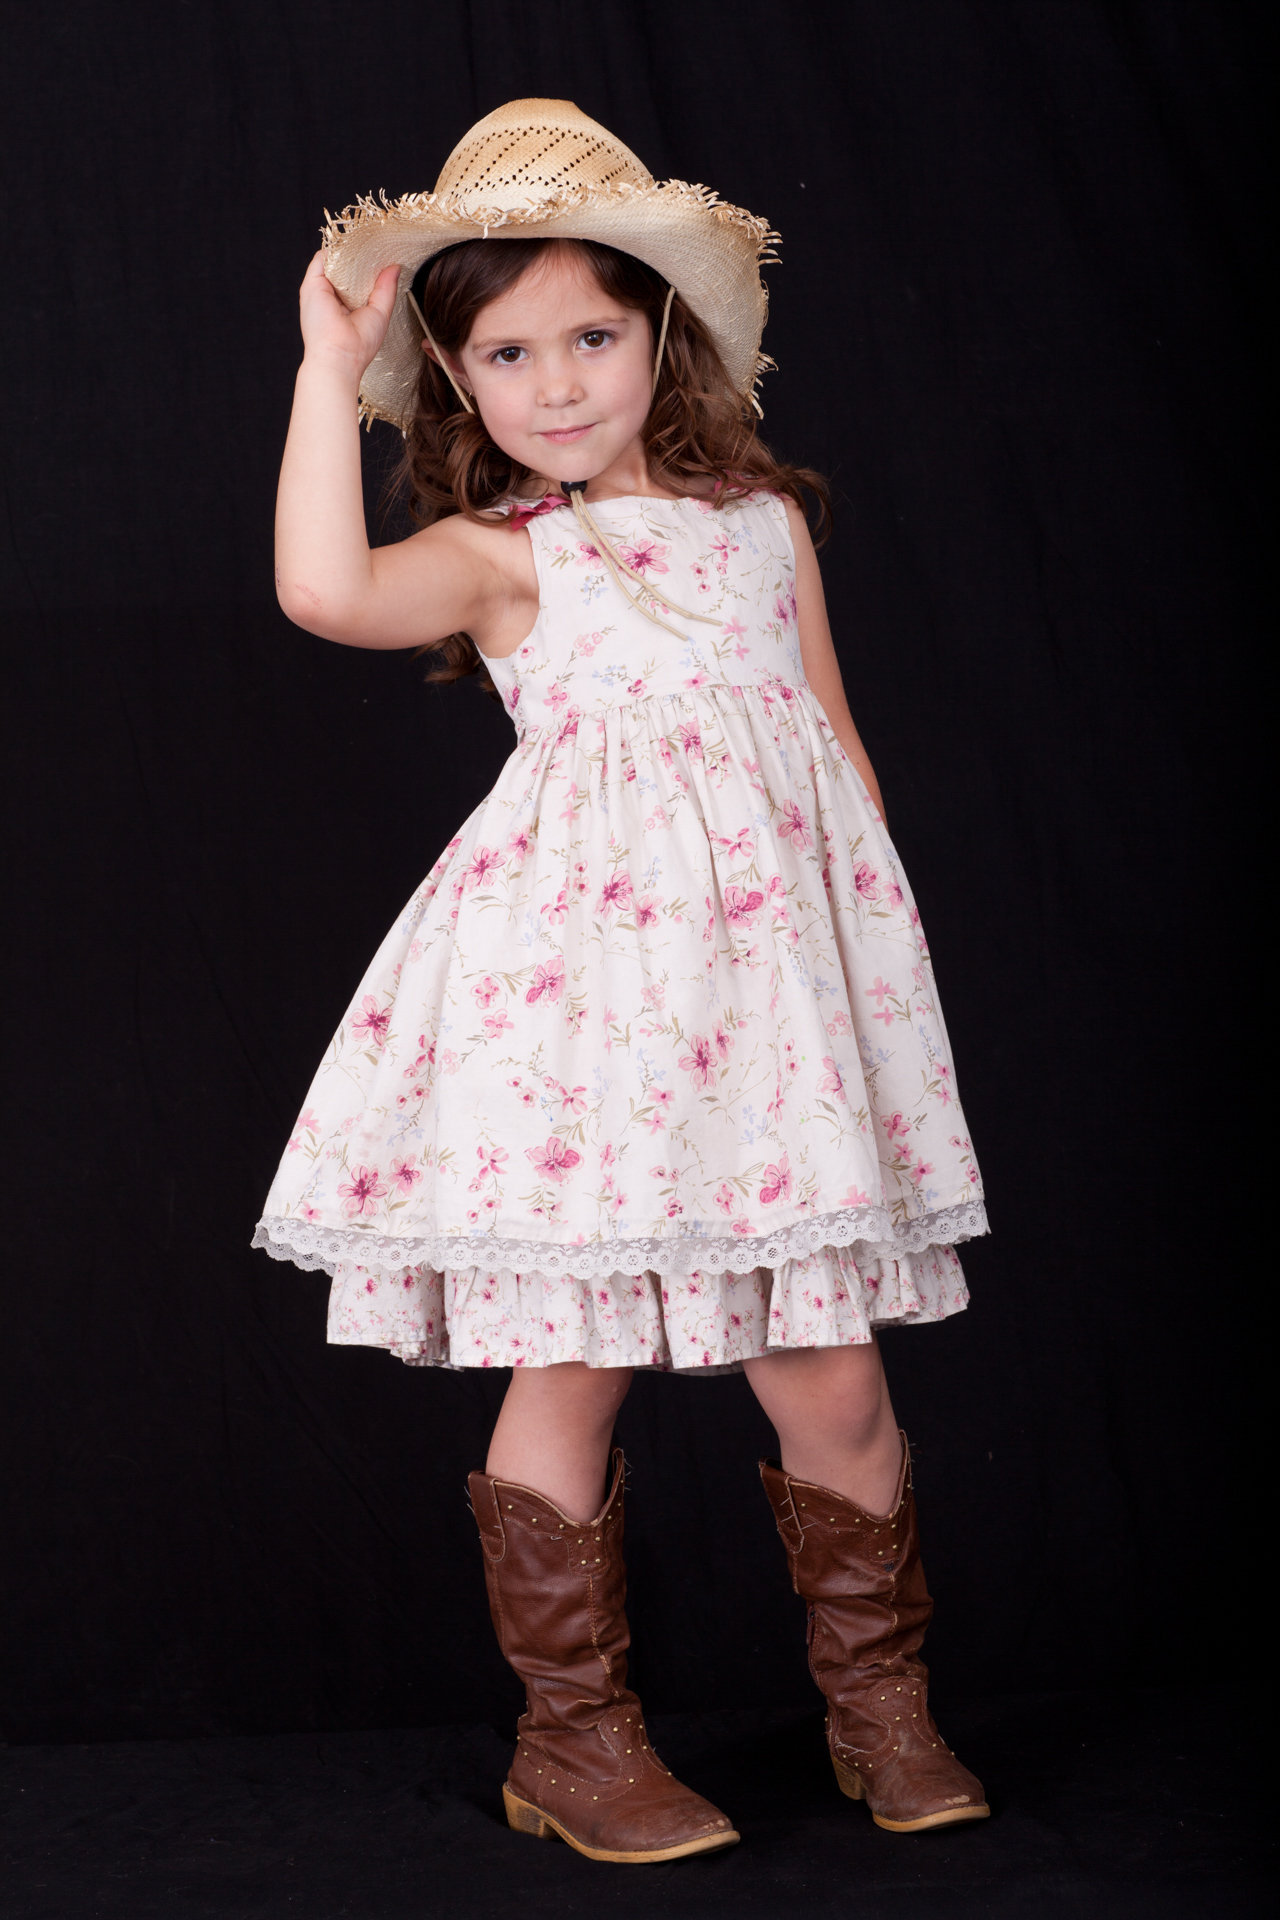 Childrens shoot-606.jpg